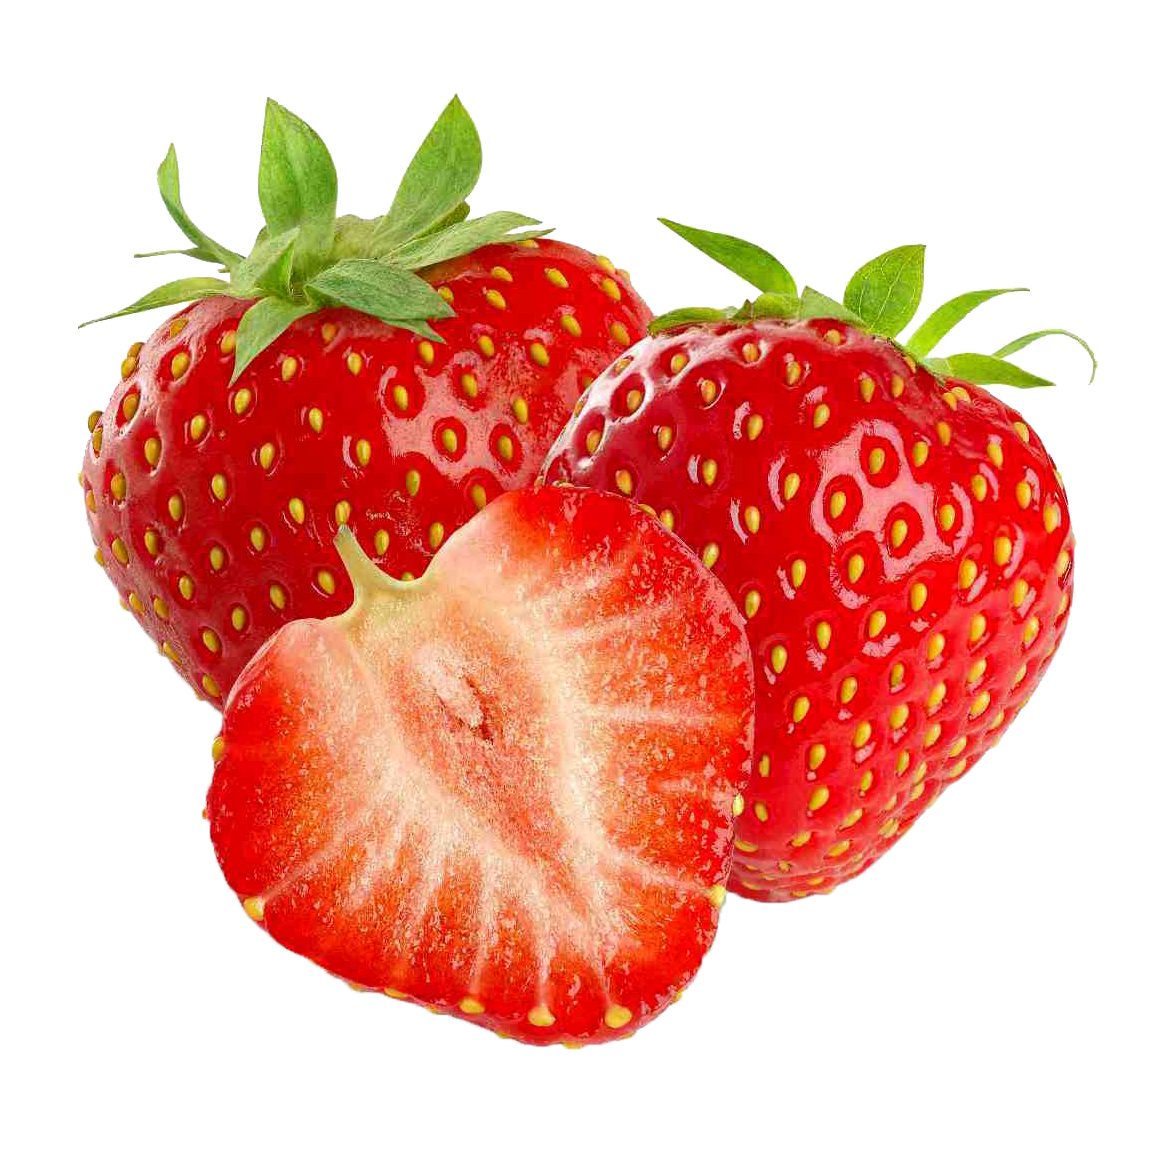 Strawberry one isolated stock. Strawberries clipart clear background